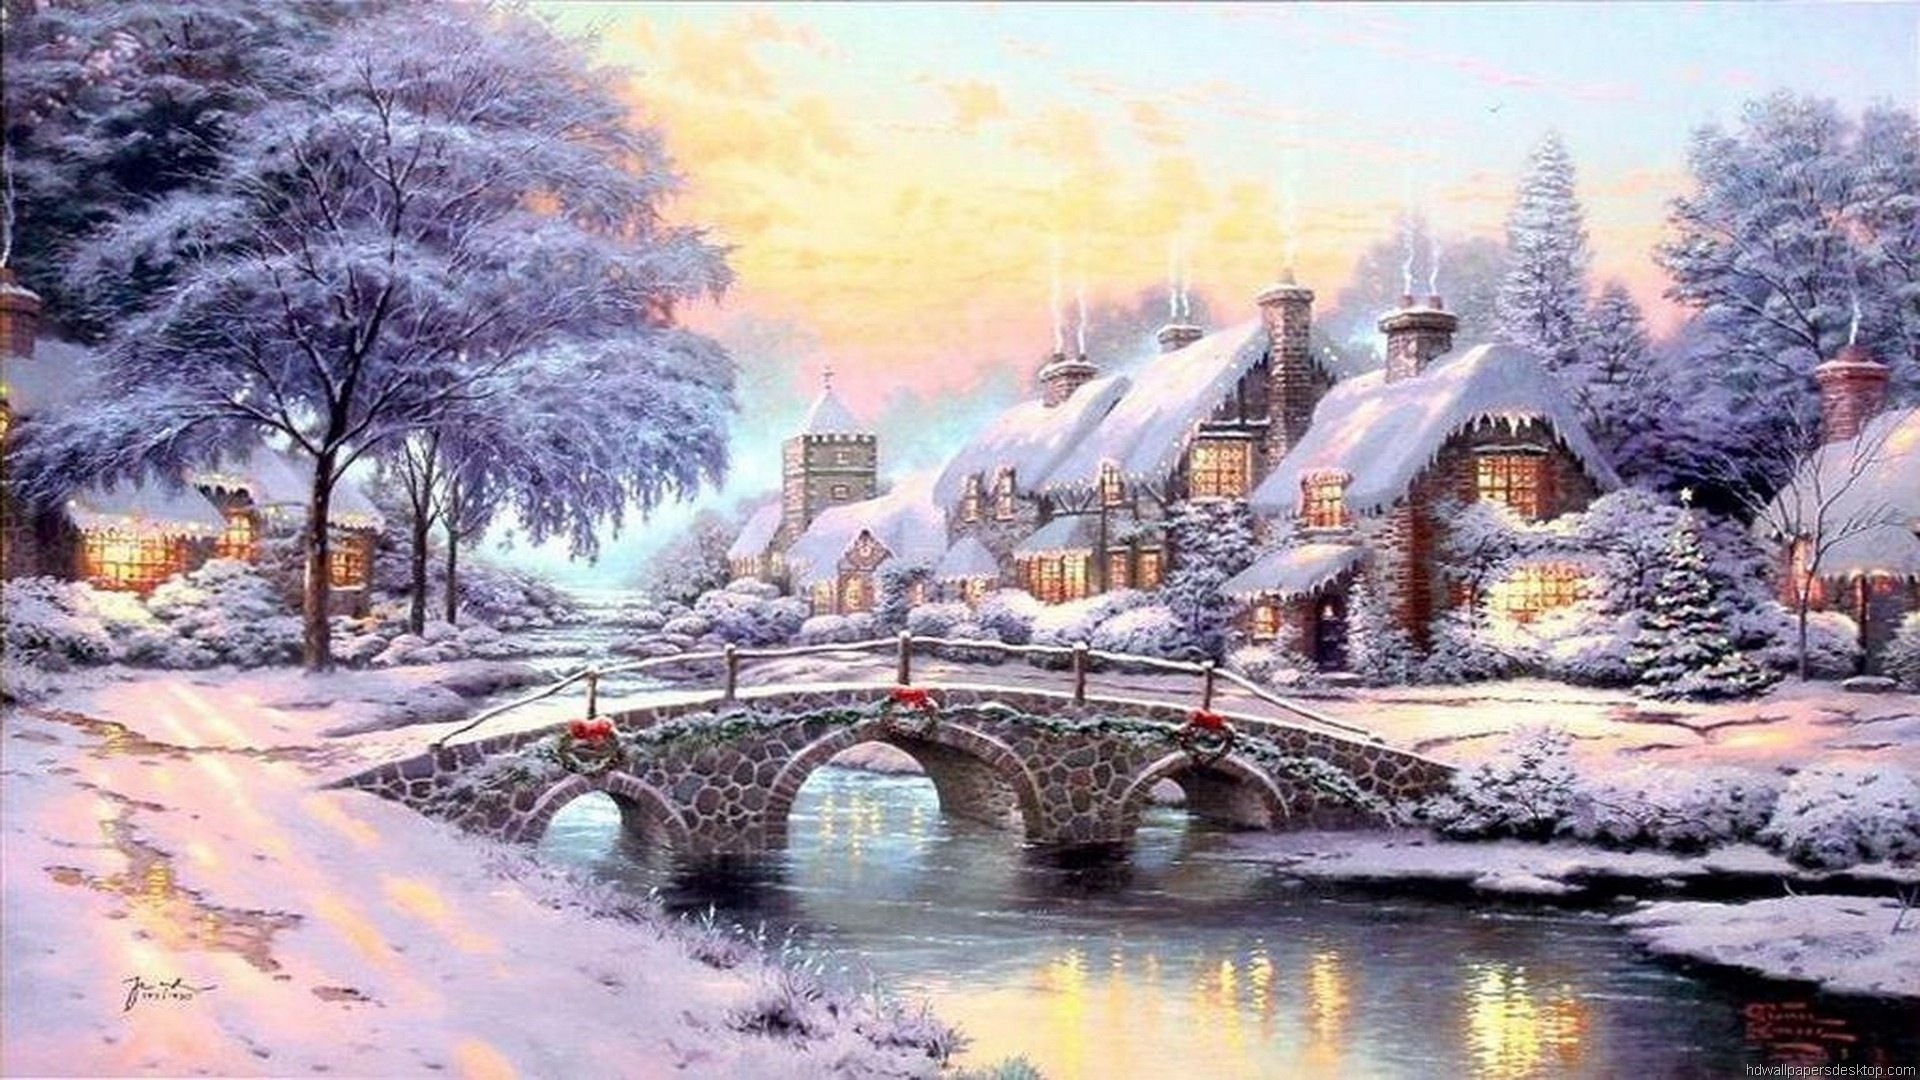 1920x1080 Awesome Thomas Kinkade Christmas Village Wallpaper Free download best  Latest 3D HD desktop wallpapers background Wide